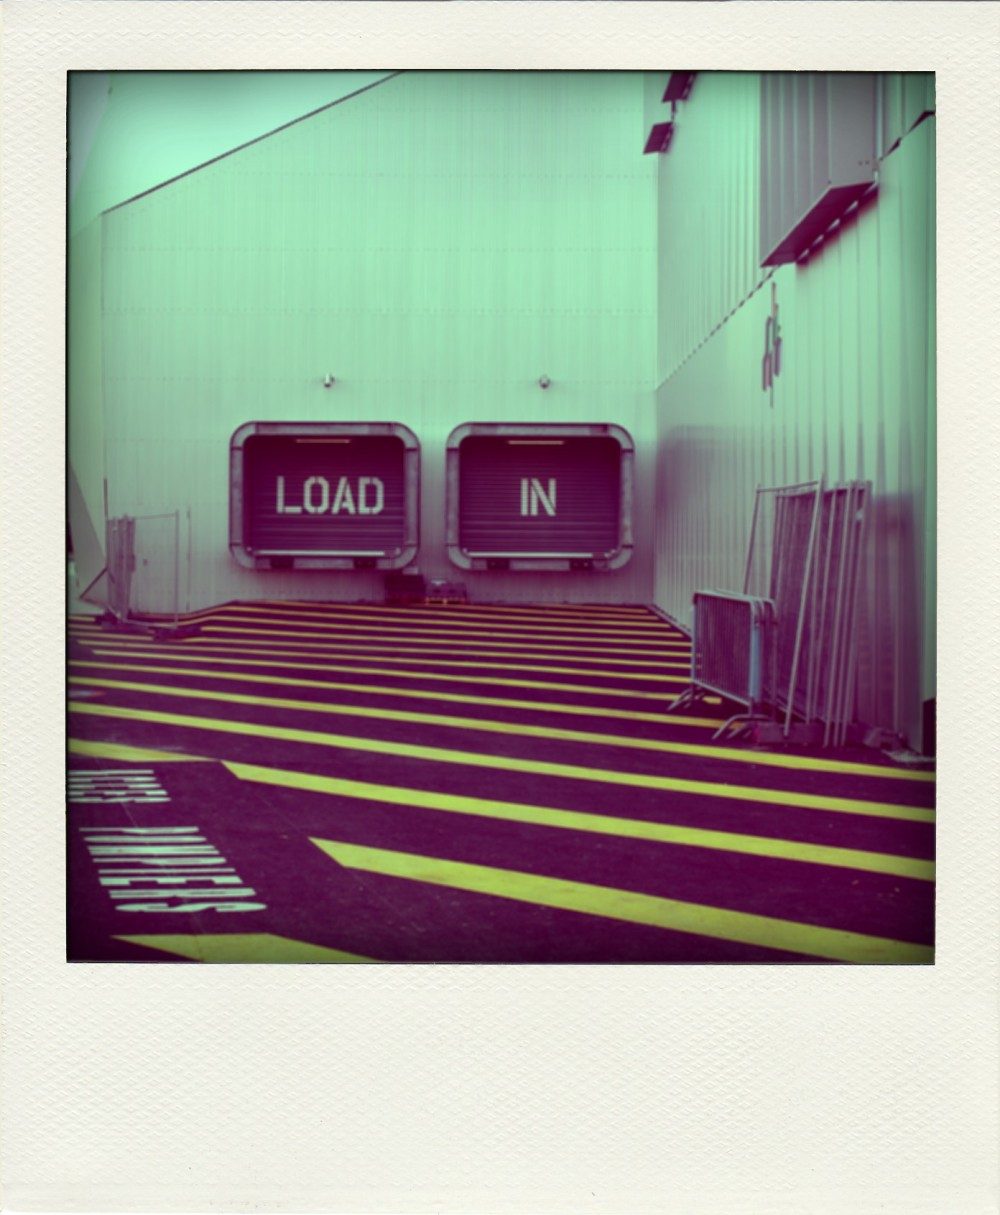 LOAD IN